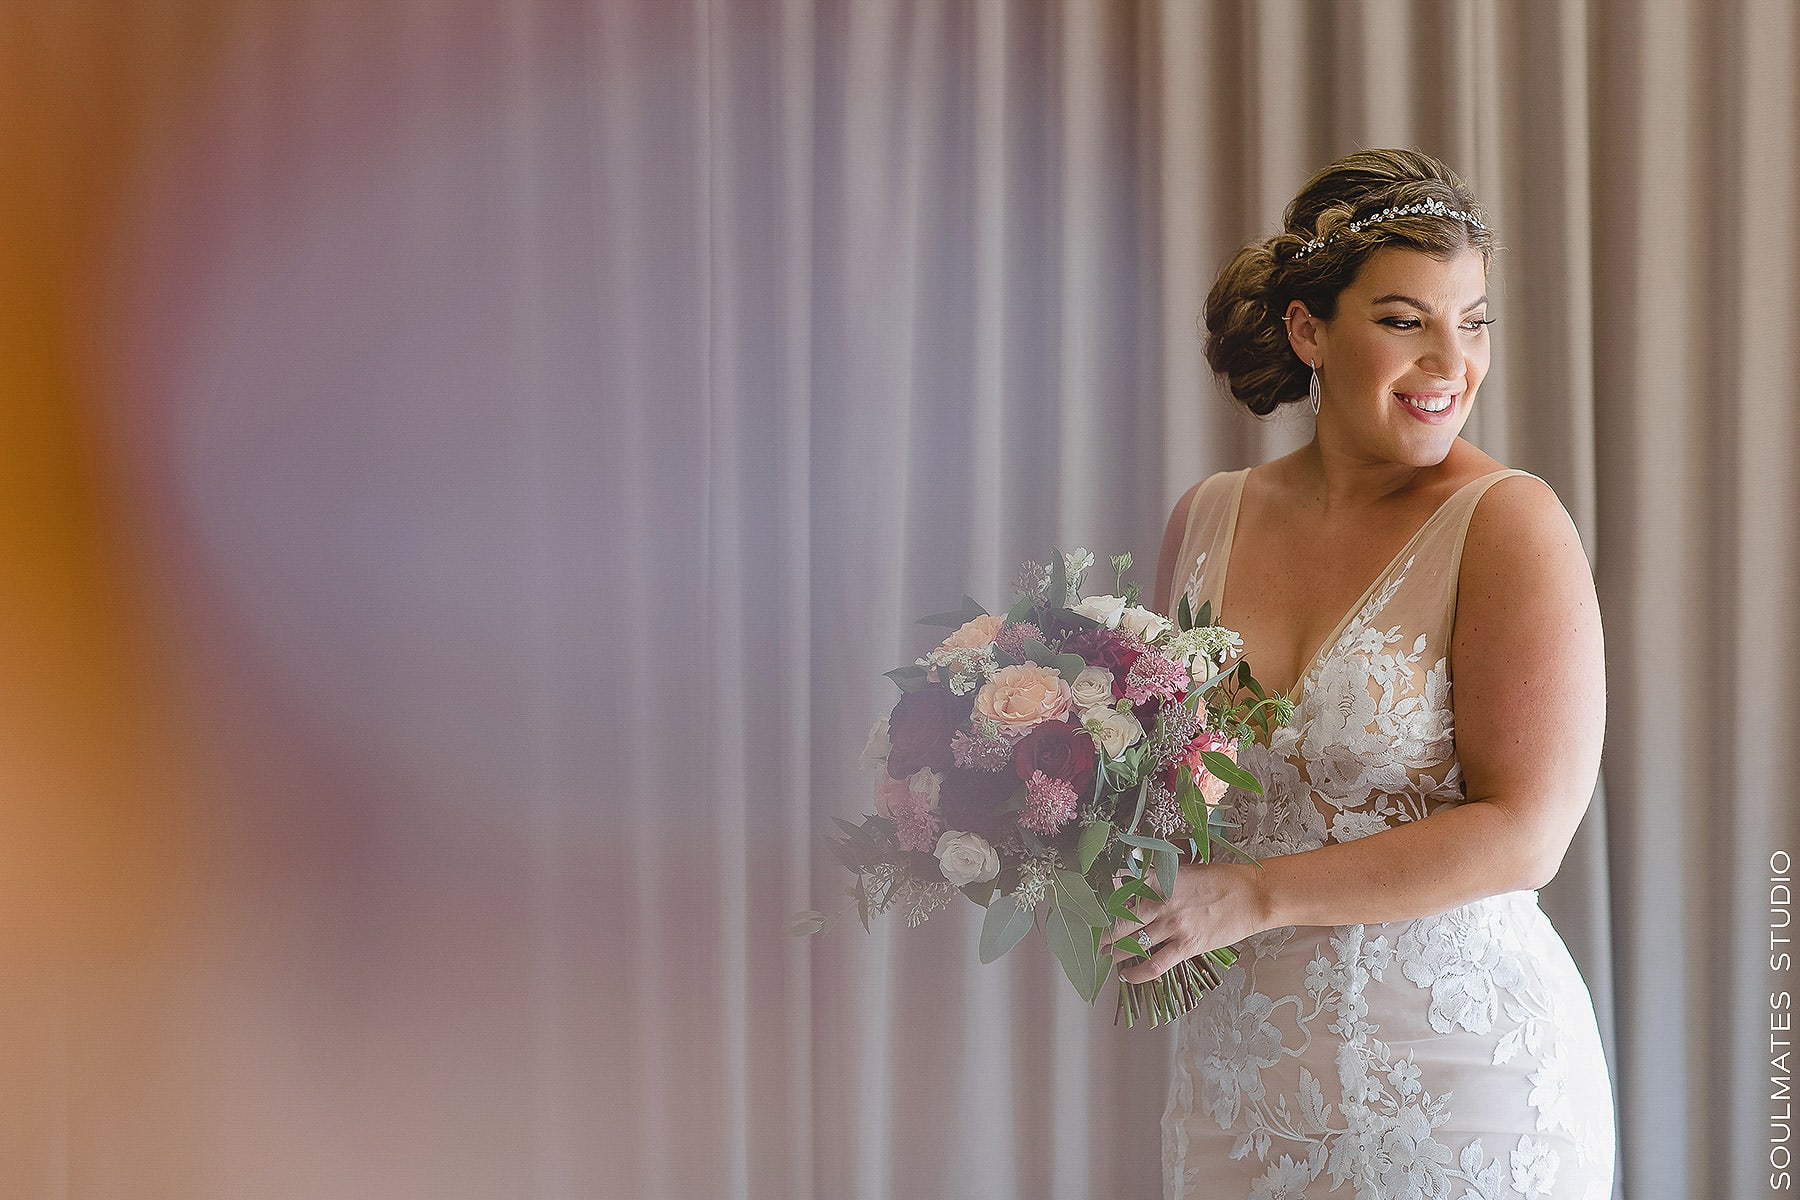 Portrait of the Bride at Jersey City Wedding